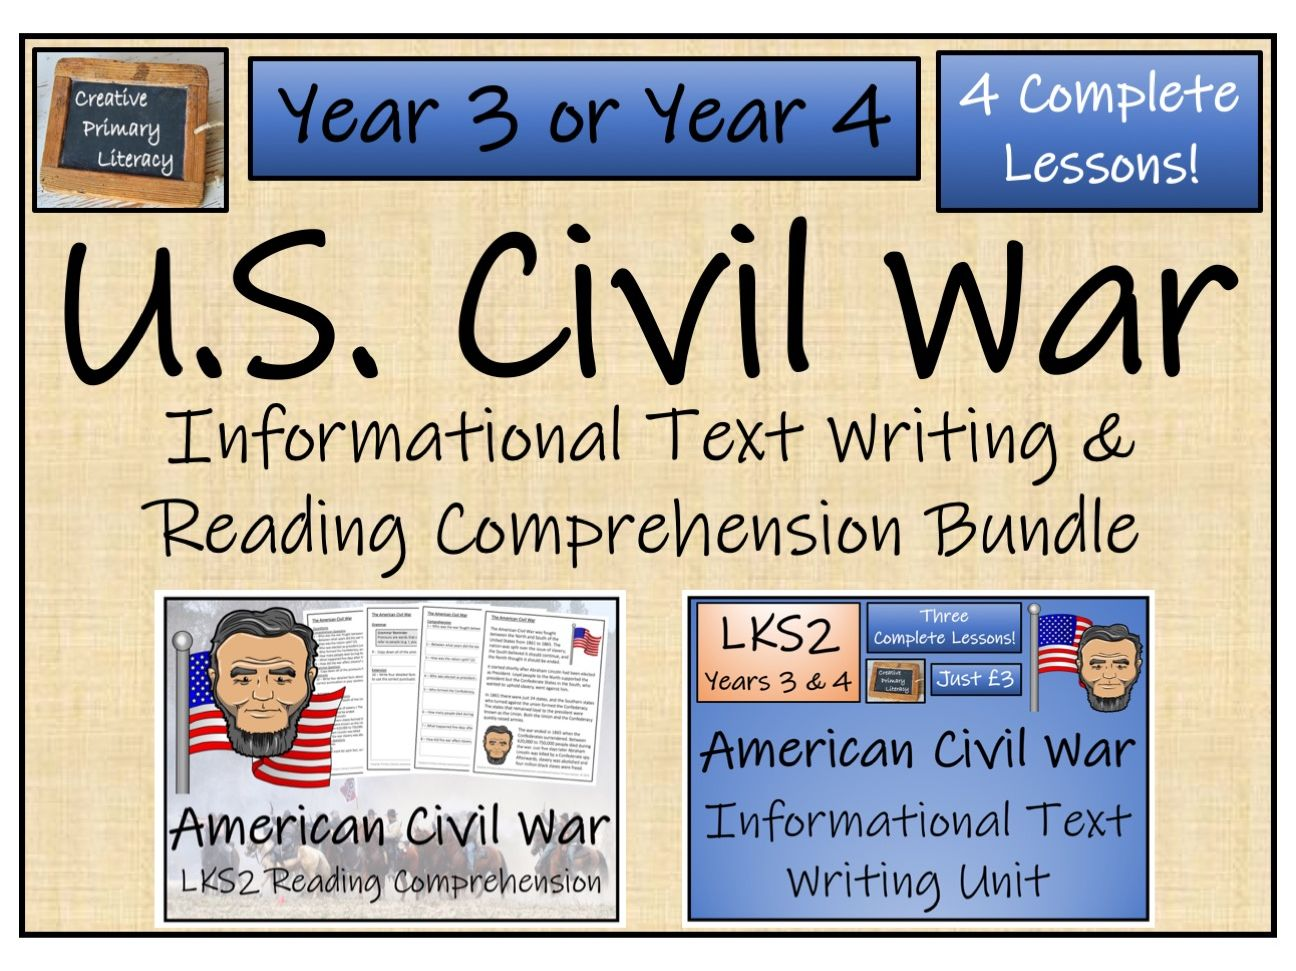 LKS2 History - American Civil War Reading Comprehension & Informational Text Writing Bundle